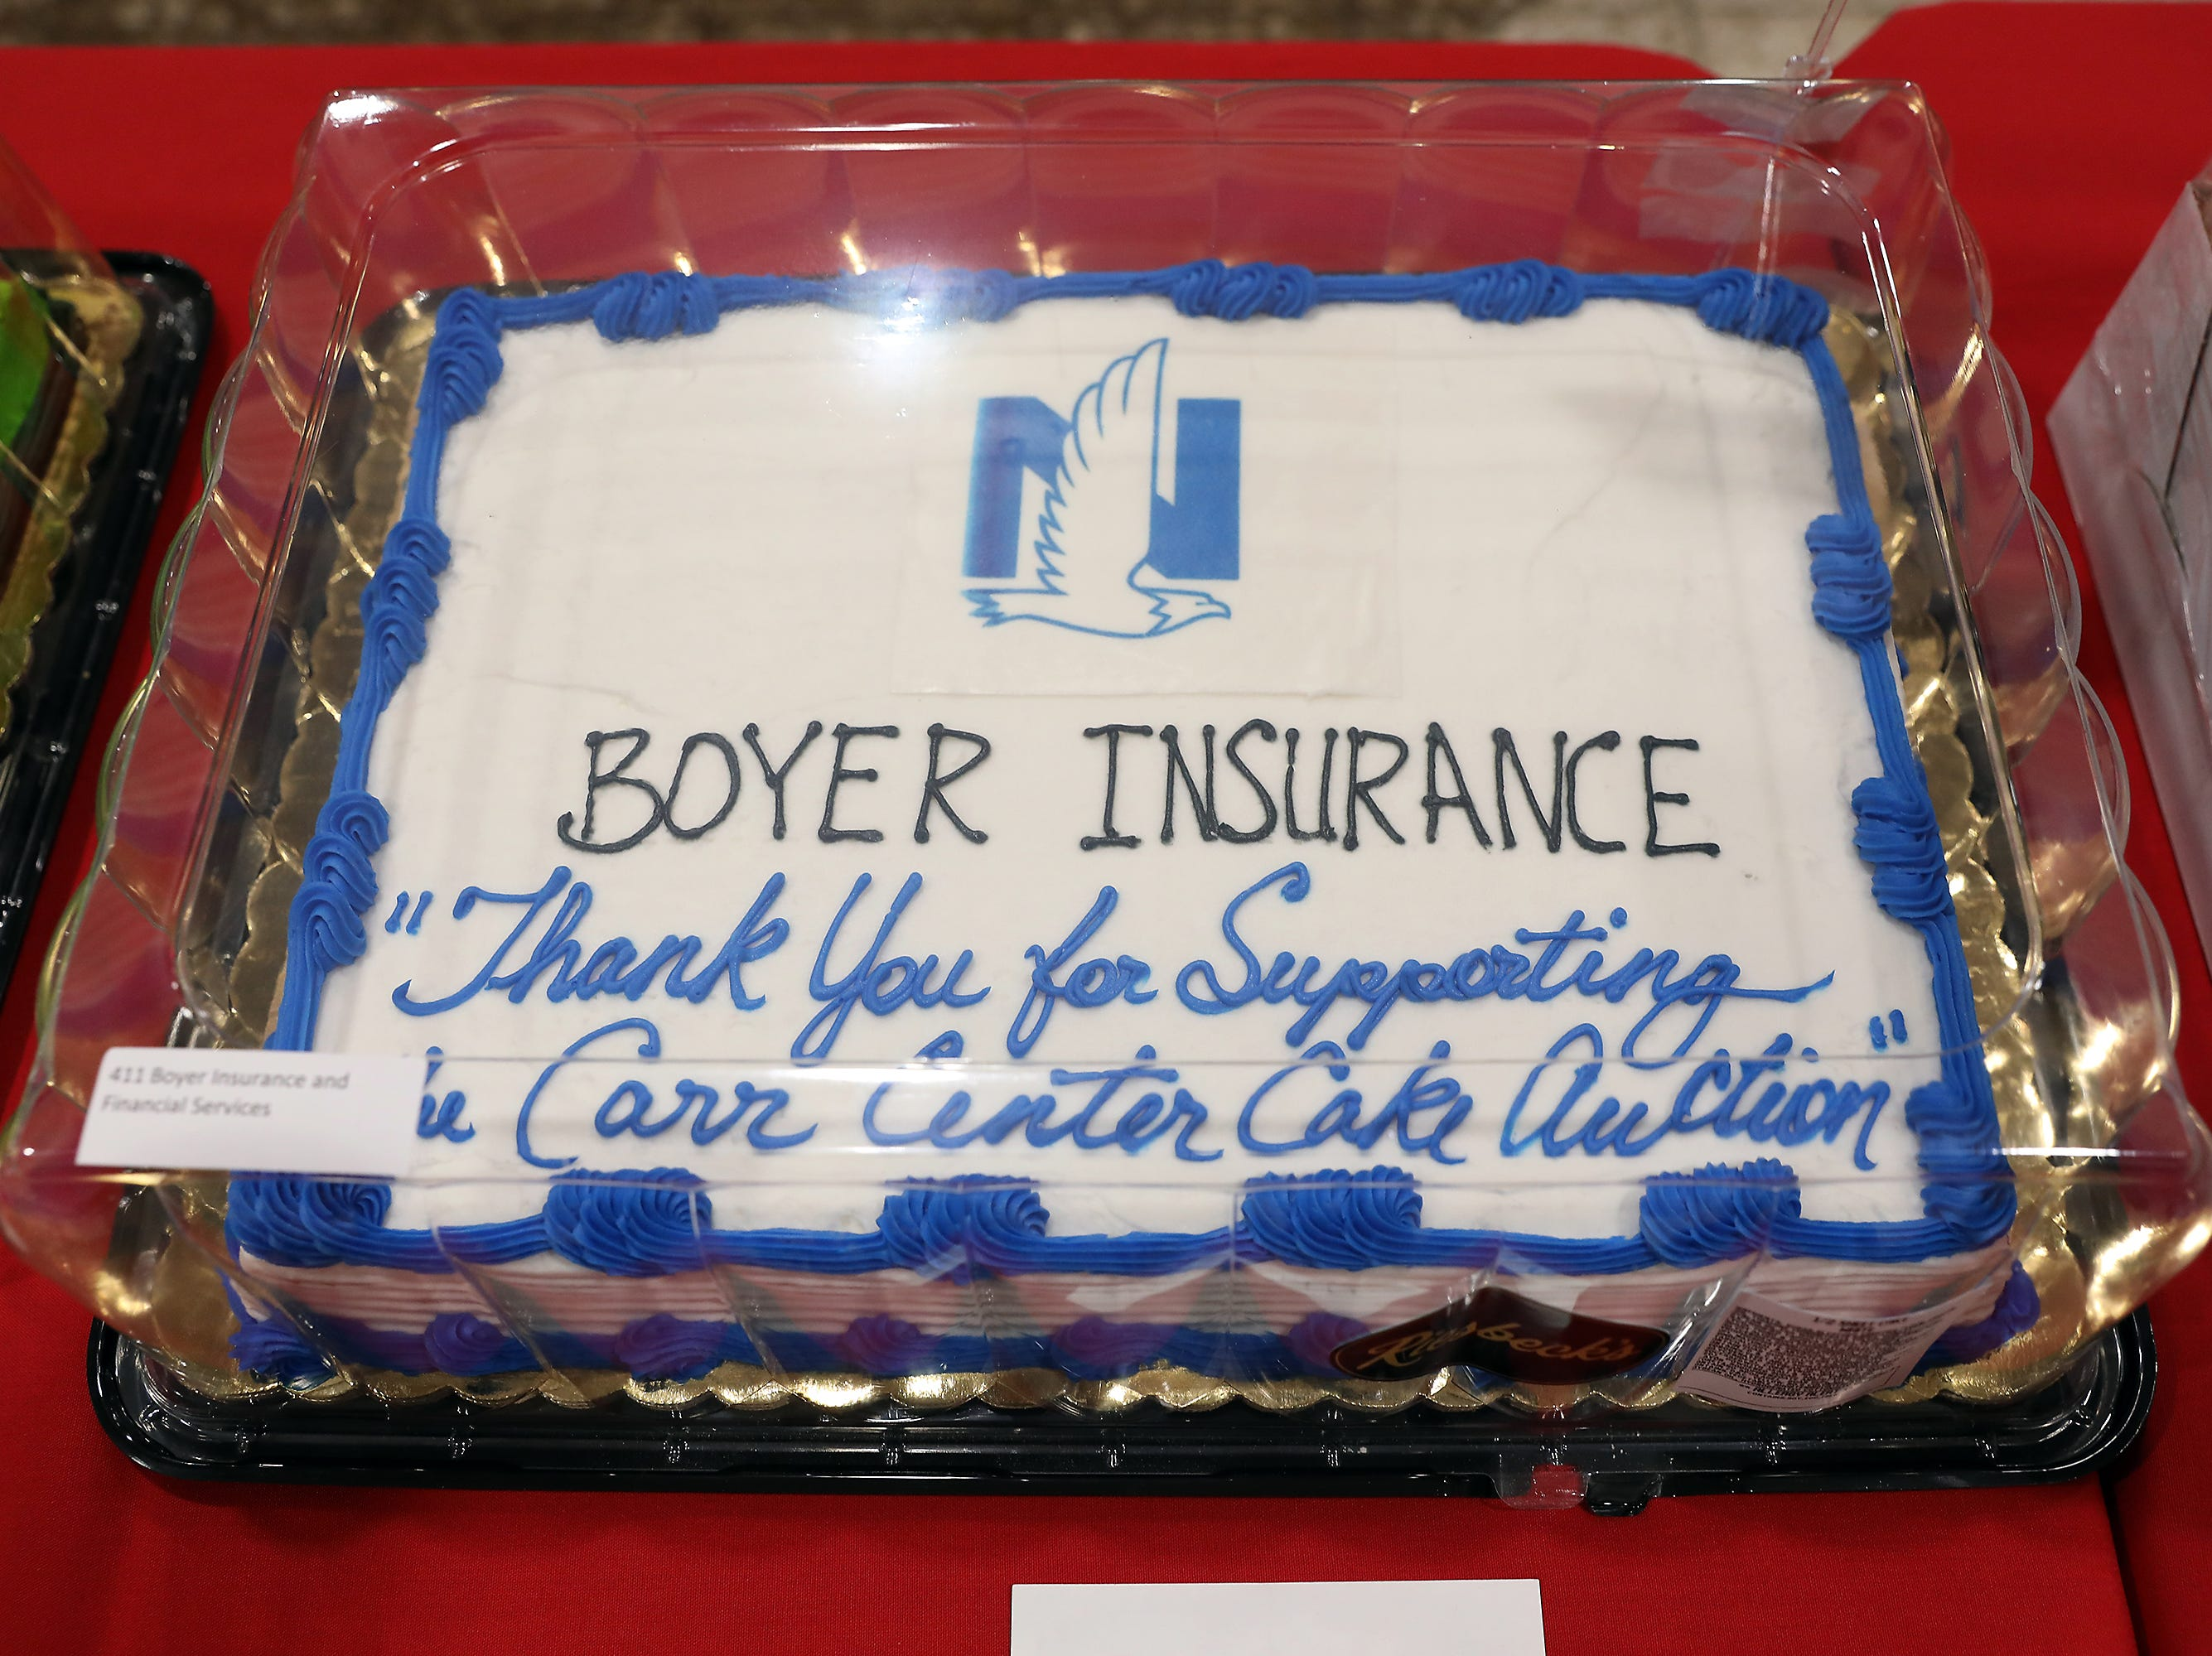 5:45 P.M. Friday cake 411 Boyer Insurance and Financial Services - 1 week at A Place At The Beach - Atlantic Beach III, June 23-30